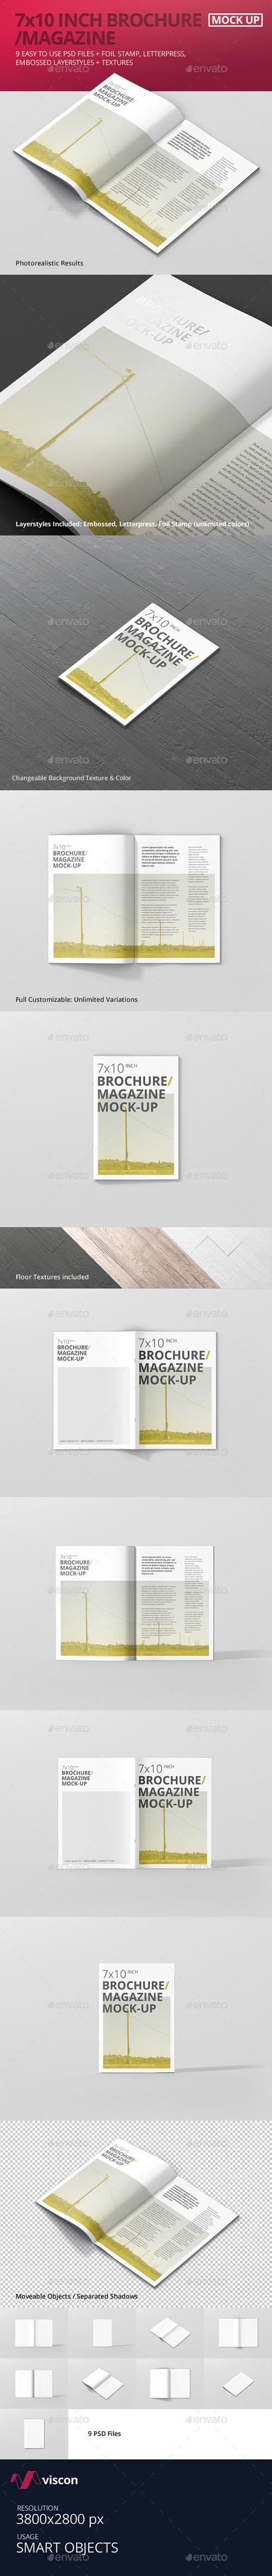 7x10 Brochure / Magazine Mock-Up 17605560